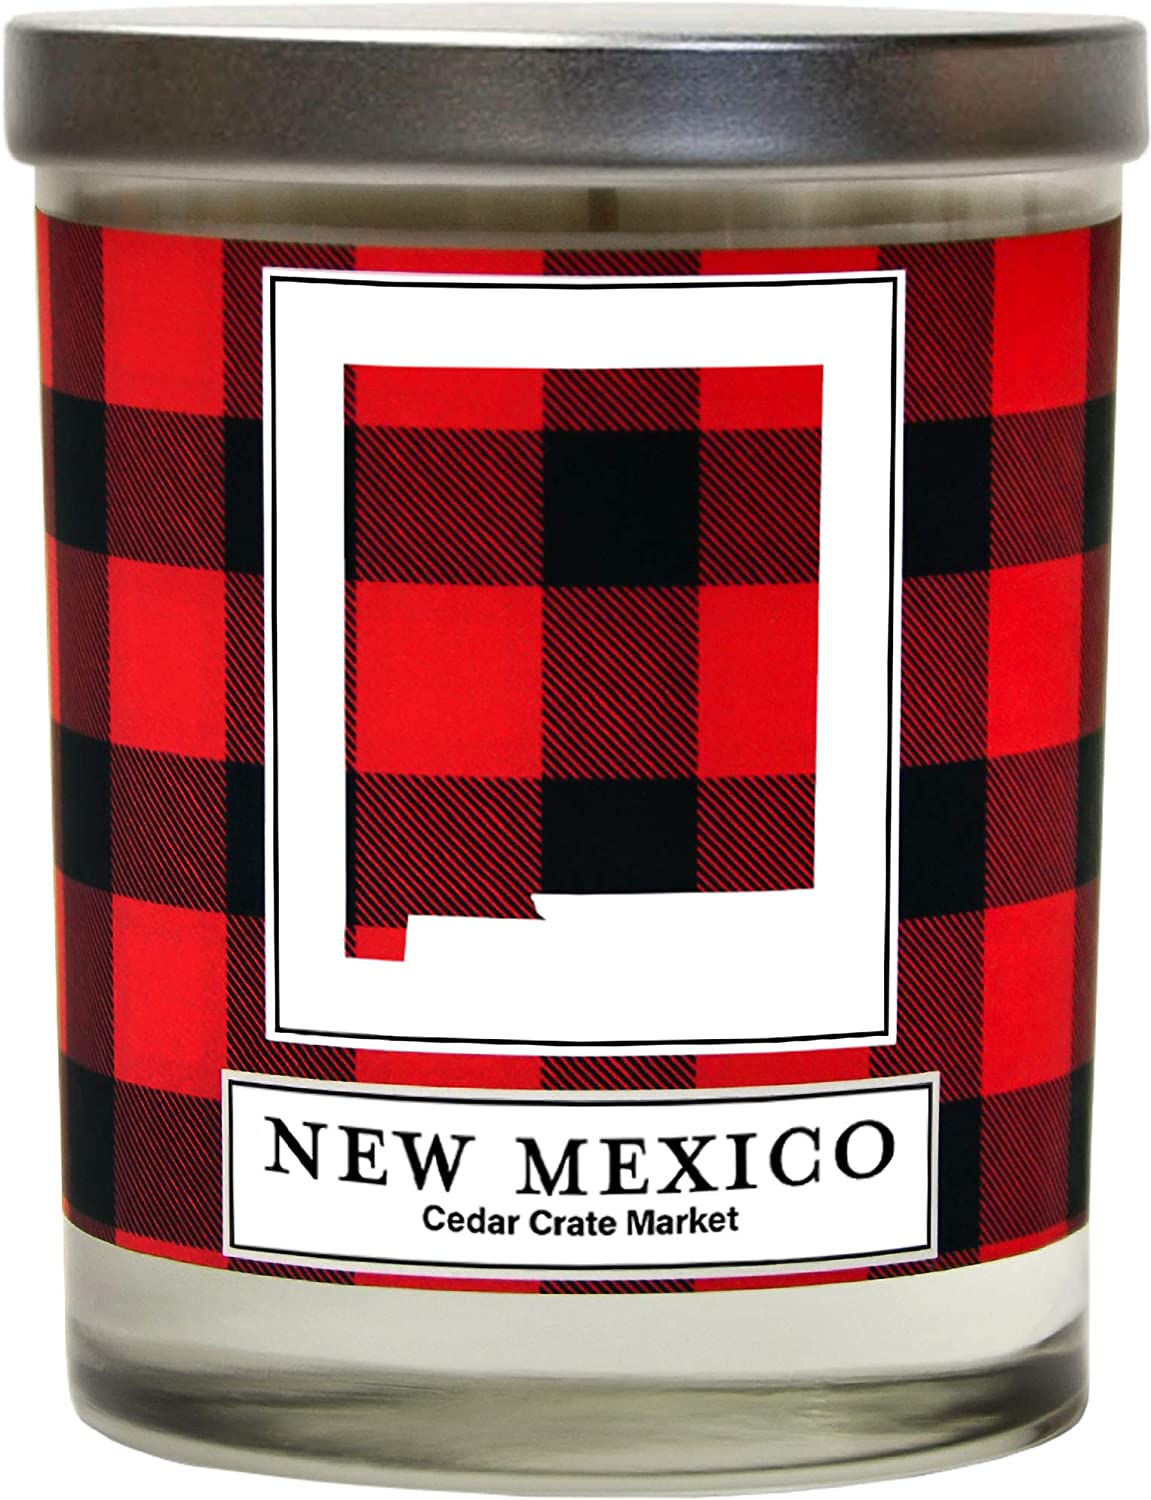 New Mexico Buffalo Plaid Scented Soy Candle | Fraser Fir, Pine Needle, Cedarwood | 10 Oz. Glass Jar Candle | Made in The USA | Decorative Candles | Going Away Gifts for Friends | State Candles